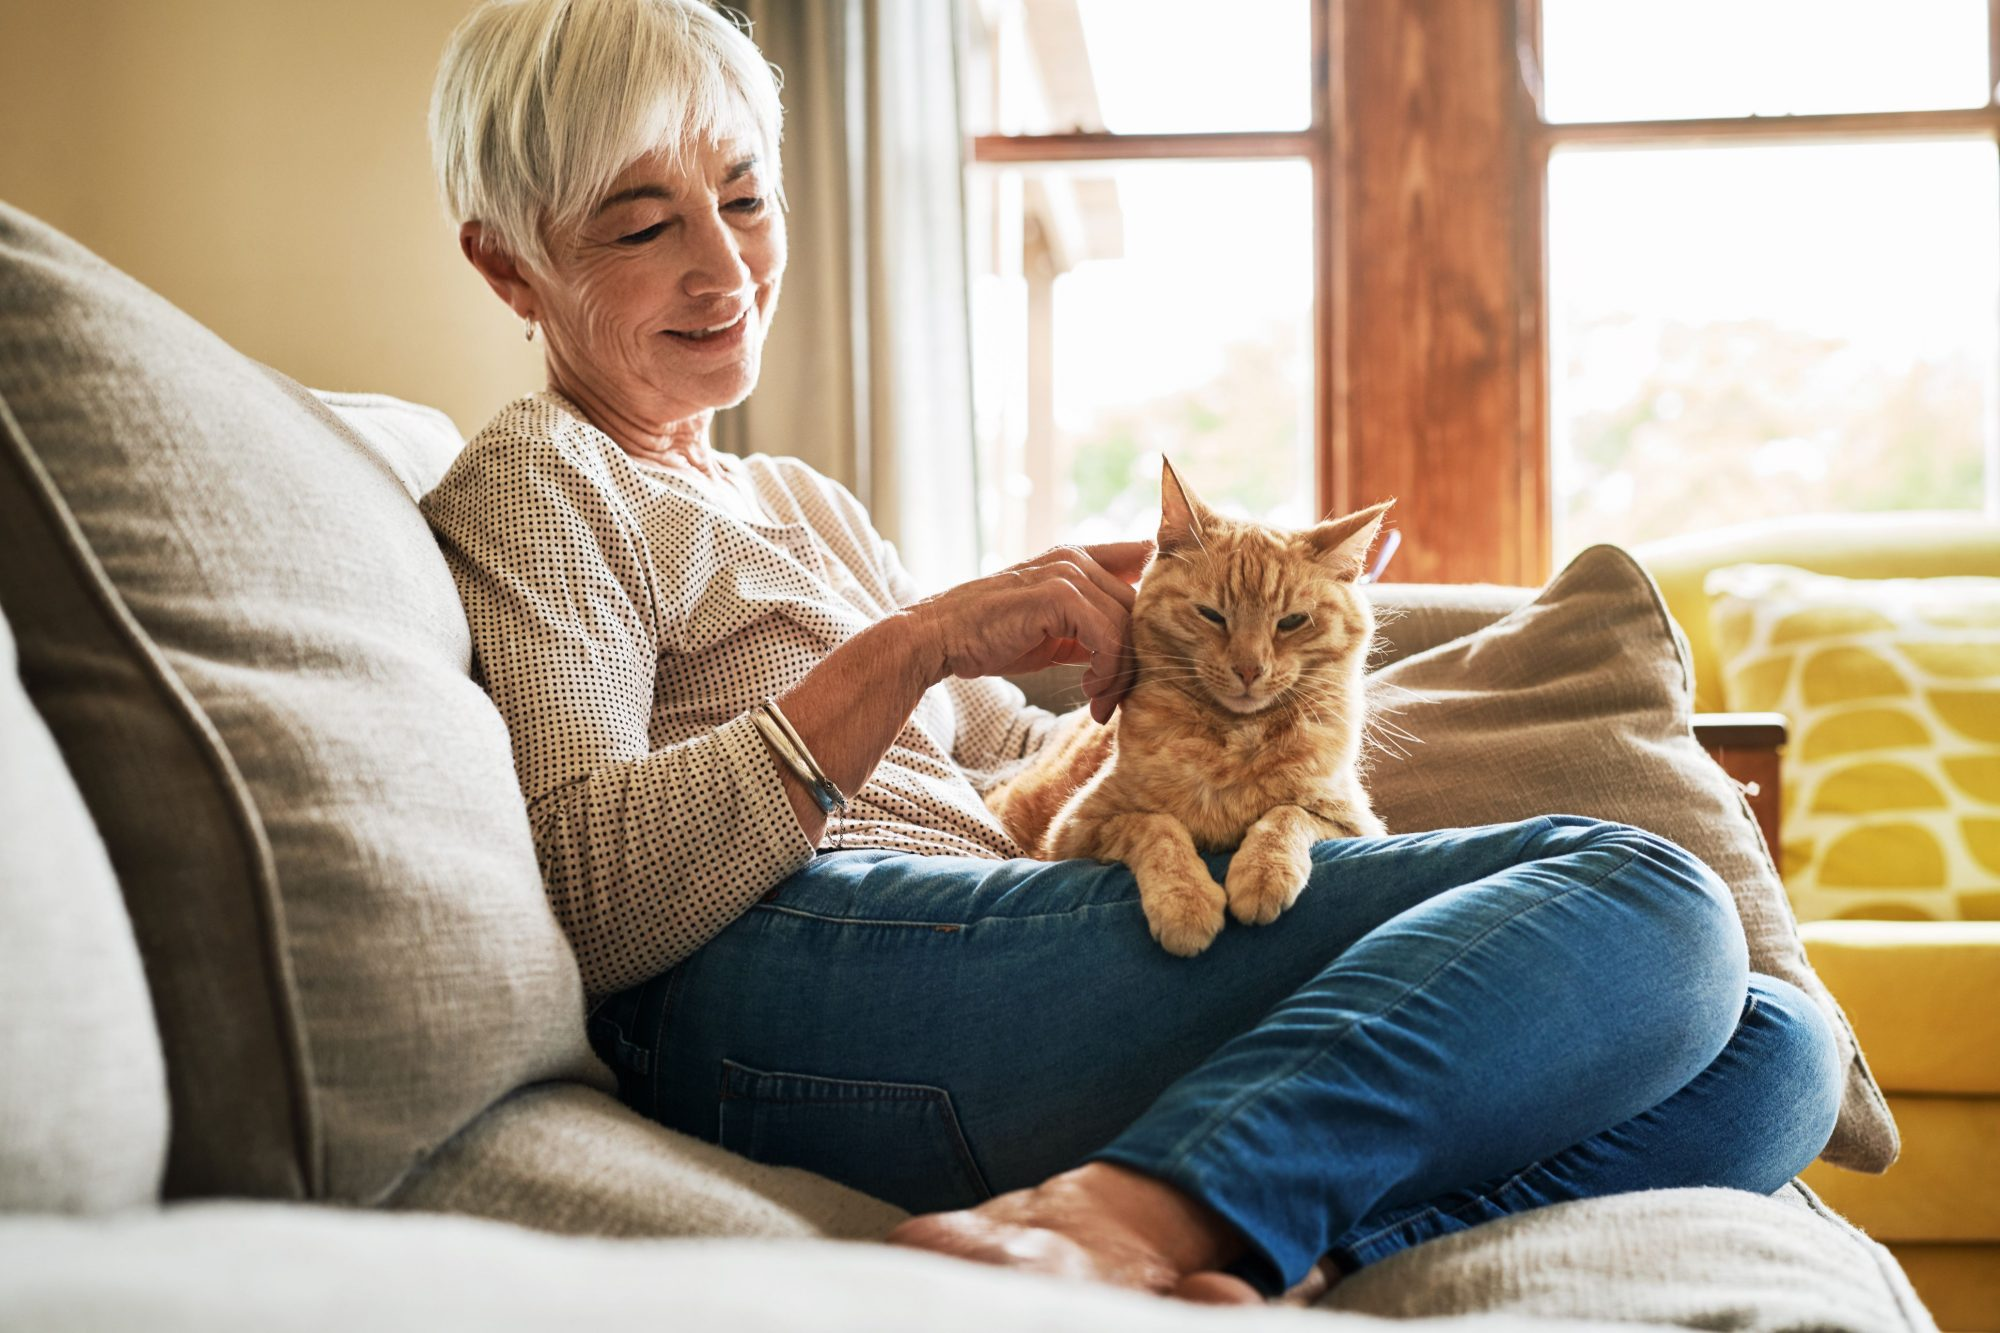 An older woman sits with her cat on her lap.